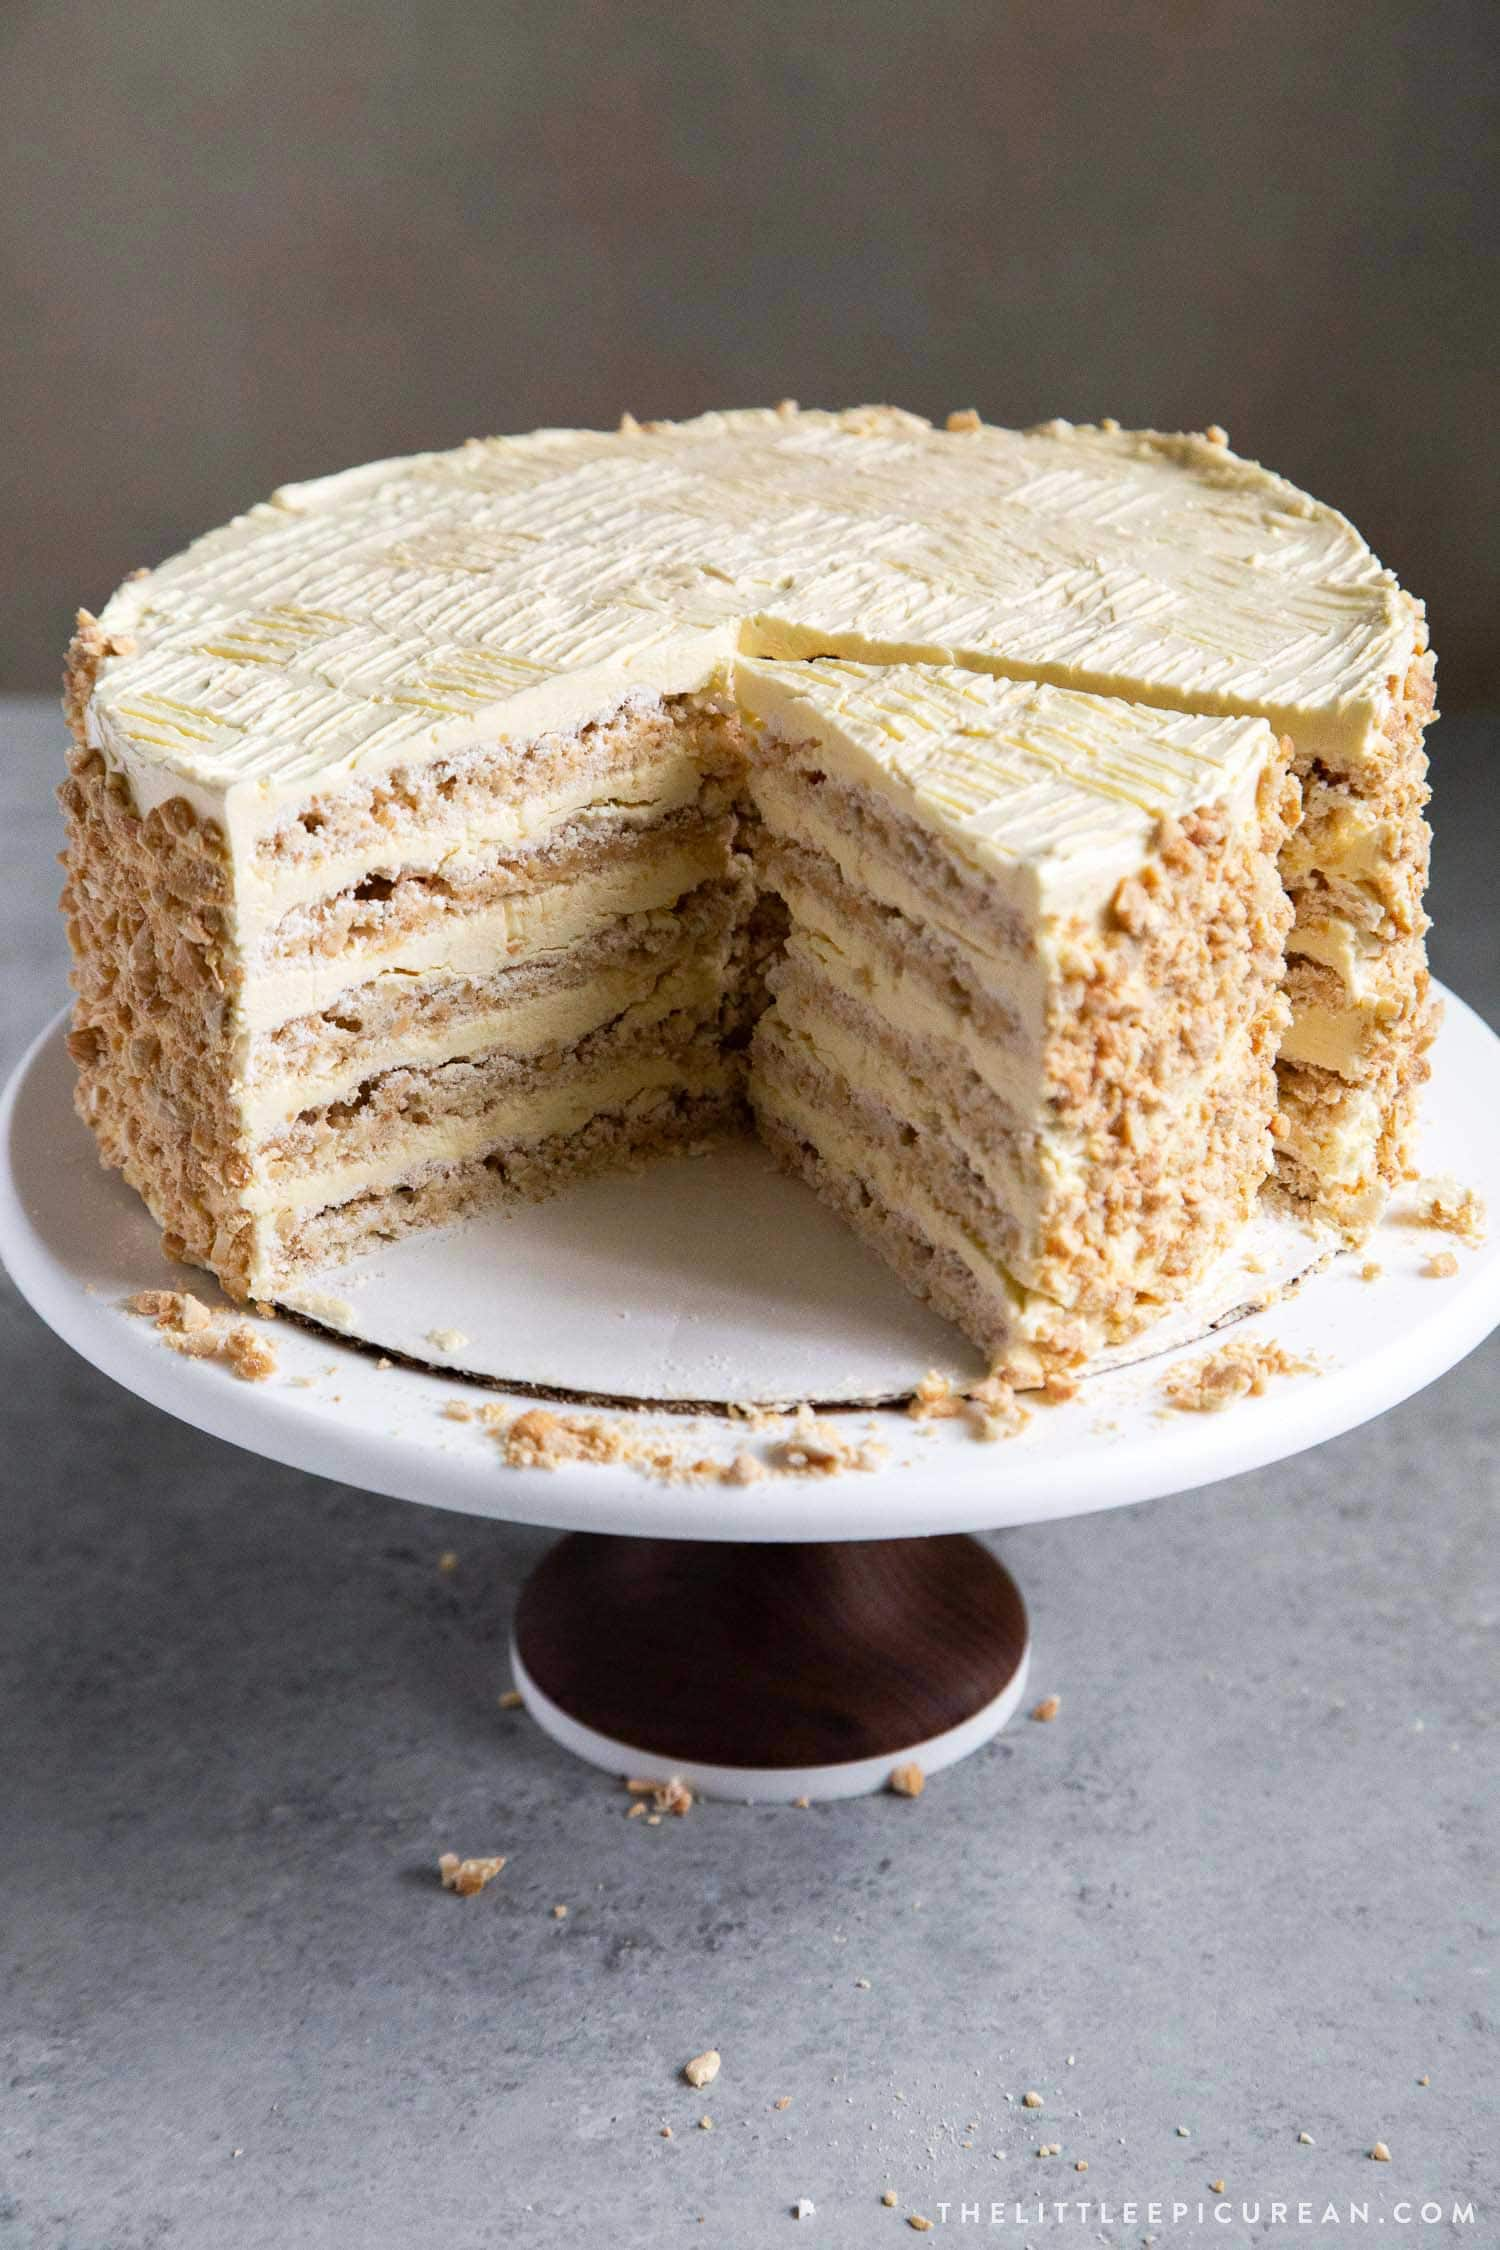 Sans Rival Cake. Filipino cake consisting of cashew dacquoise layered with French buttercream. #cake #dessert #glutenfree #cashews #buttercream #filipino #filipinodesserts #filipinorecipes